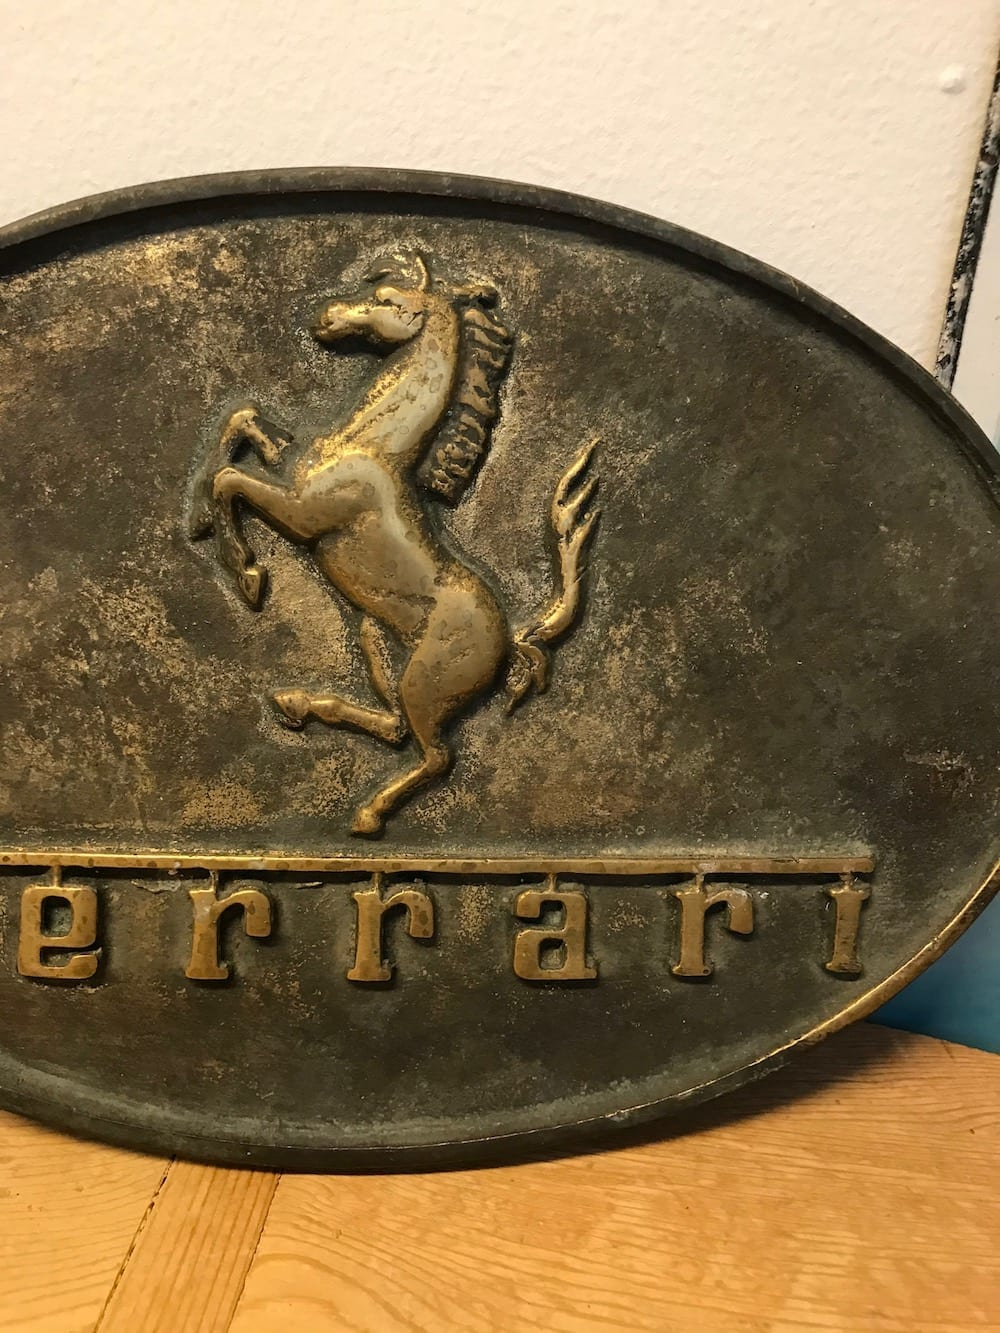 VINTAGE FERRARI BRASS PLAQUE. - Vintage Motoring UK